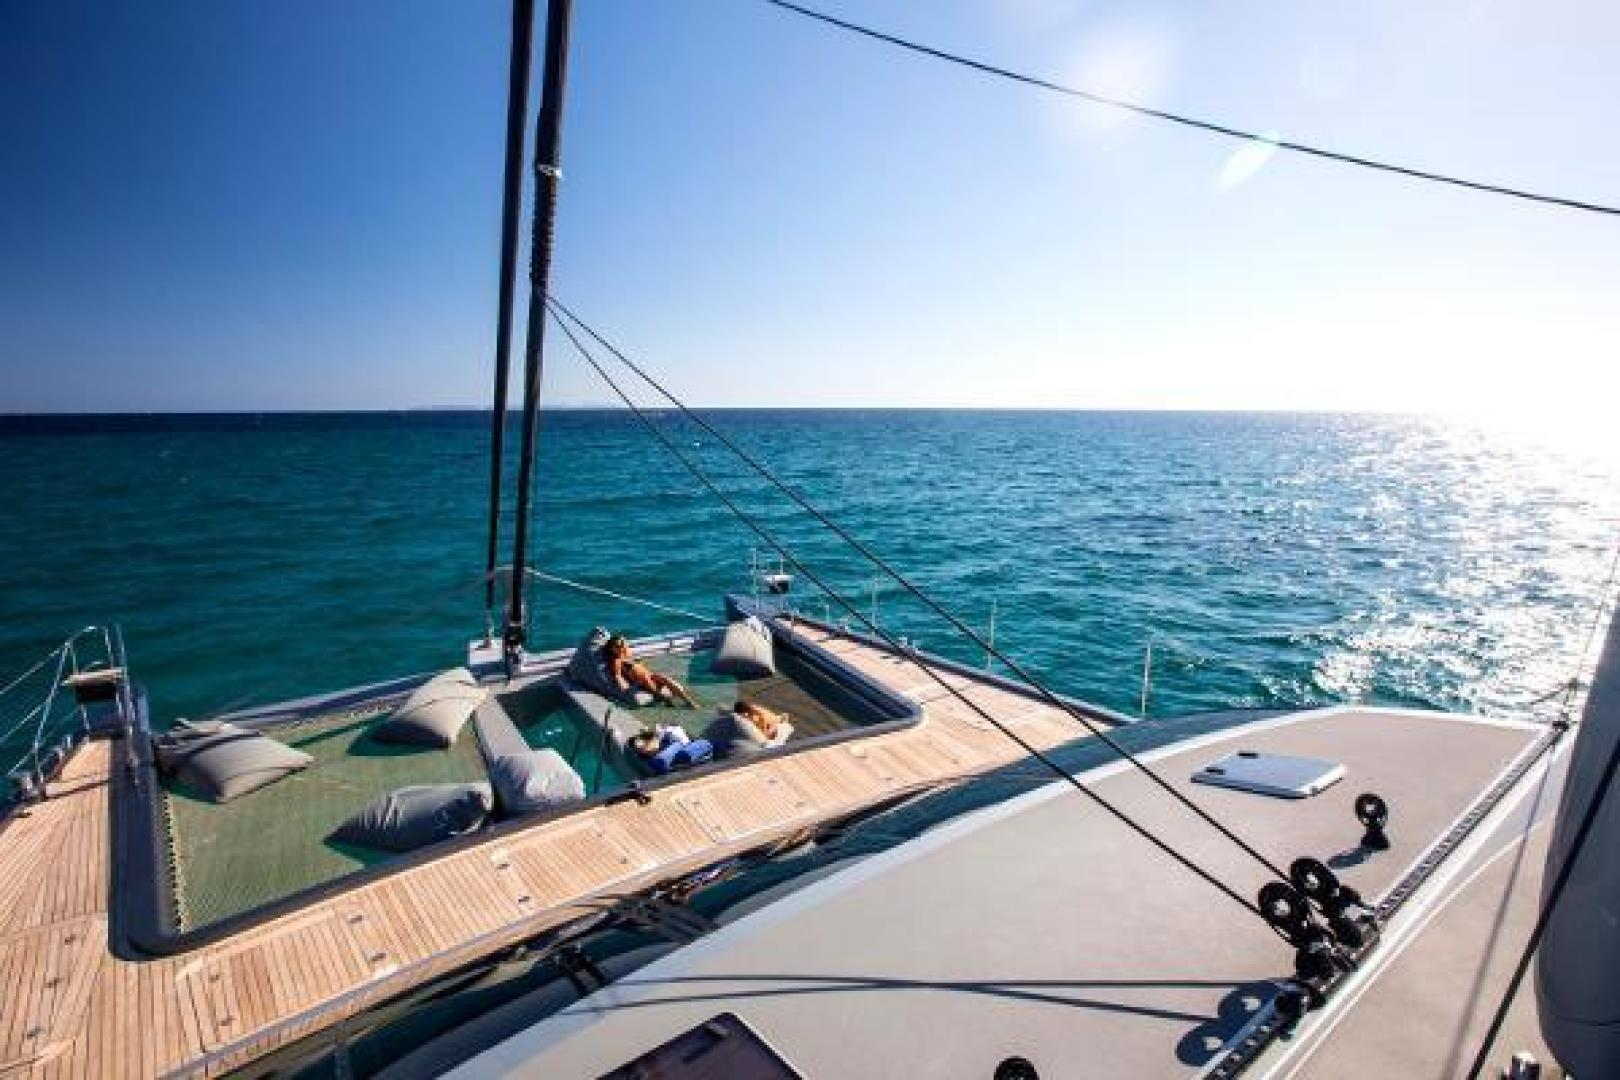 Catamaran-Blue Coast Yachts  2011-CARTOUCHE Antigua & Barbuda-1296530 | Thumbnail